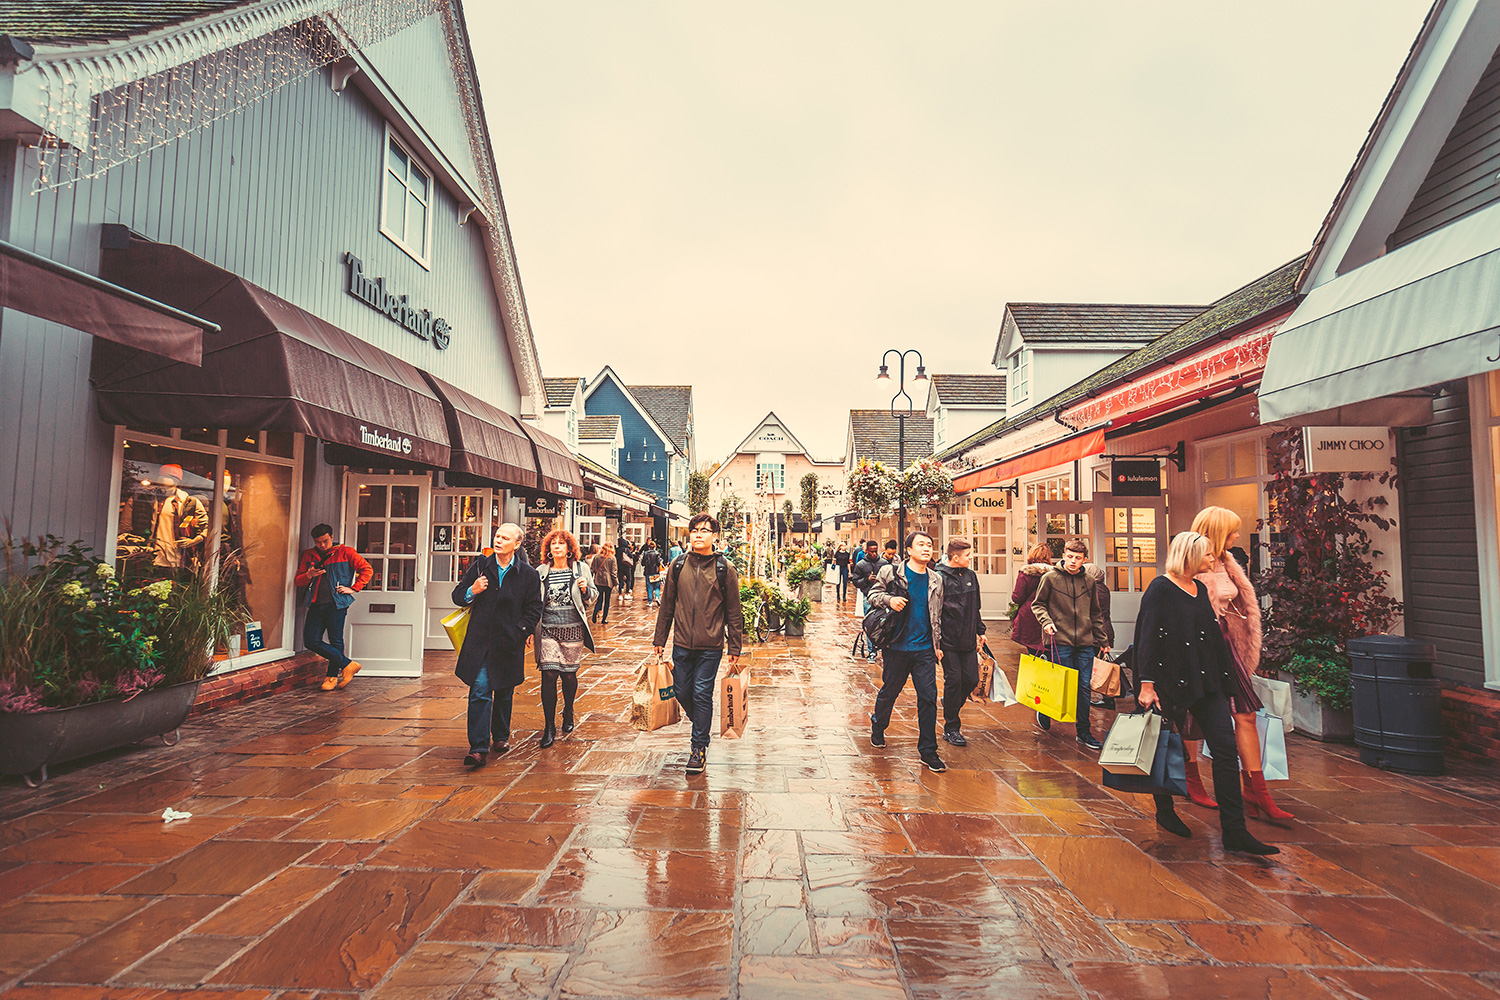 People shopping at bicester village shopping centre